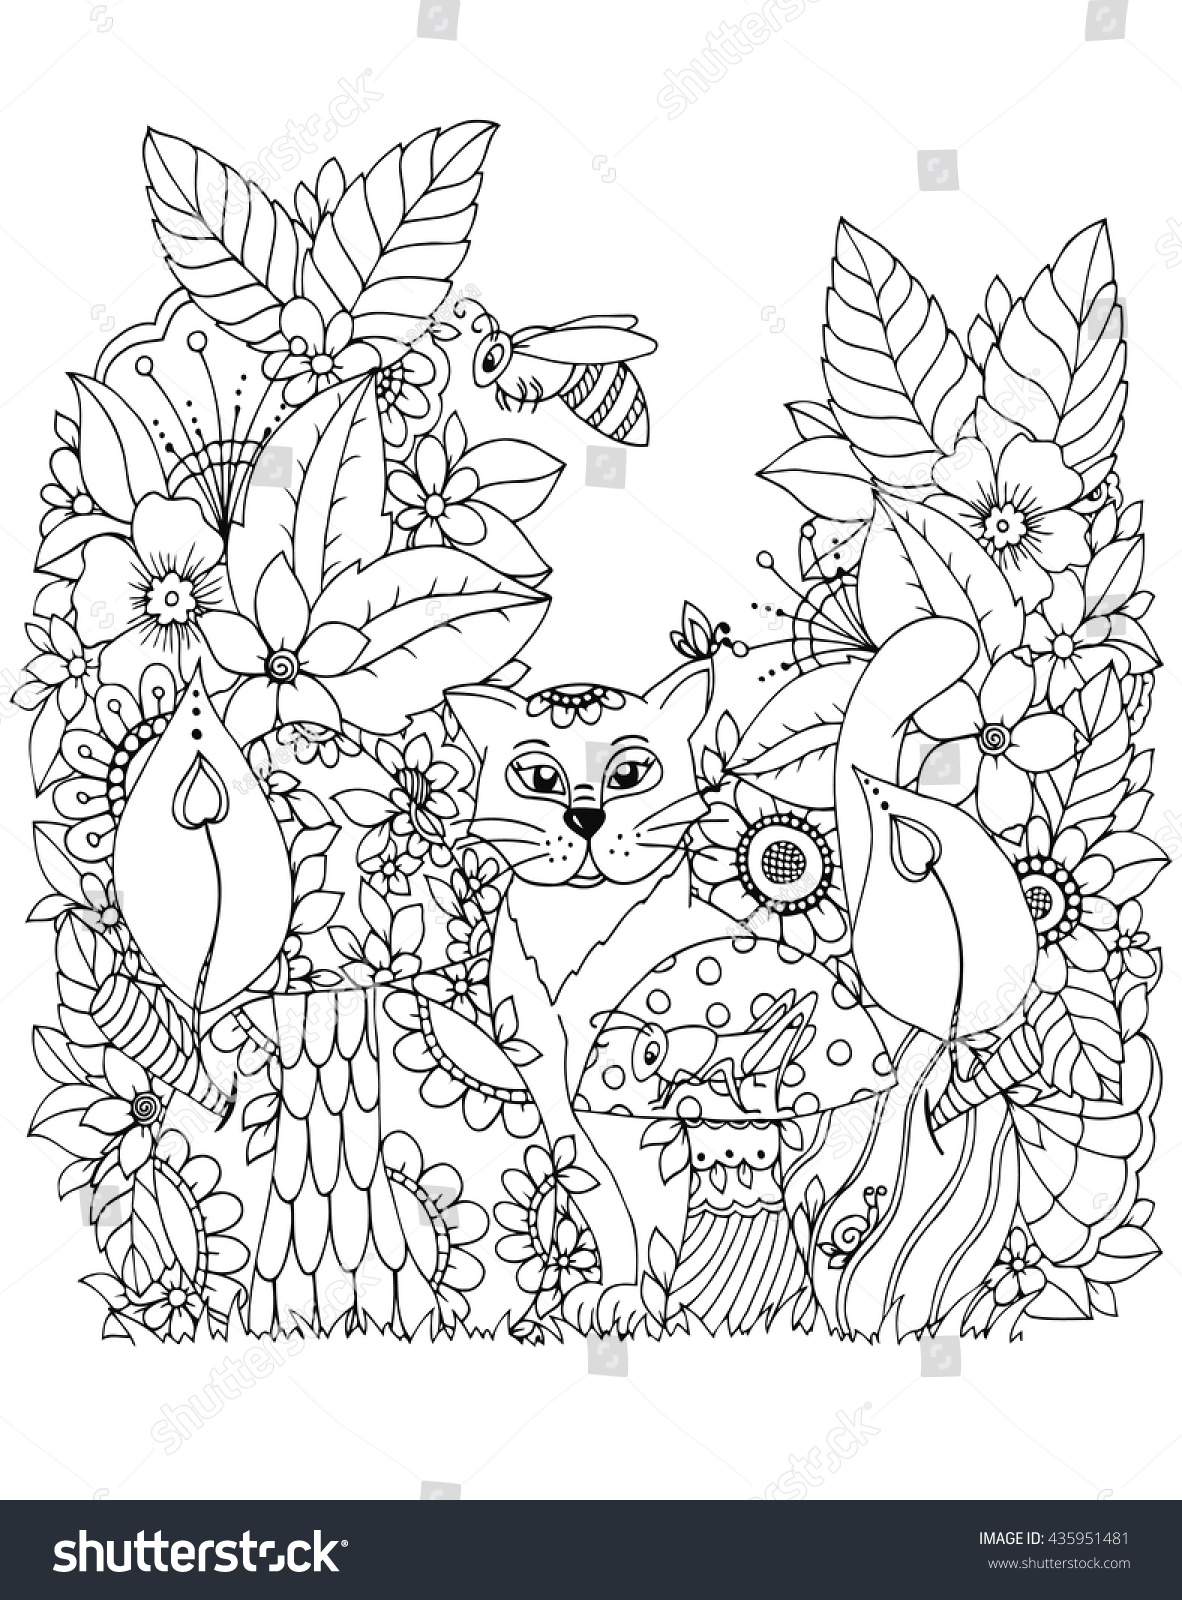 Vector Illustration Zen Tangd Cat Sitting In The Flowers Doodle Drawing Mushrooms Coloring